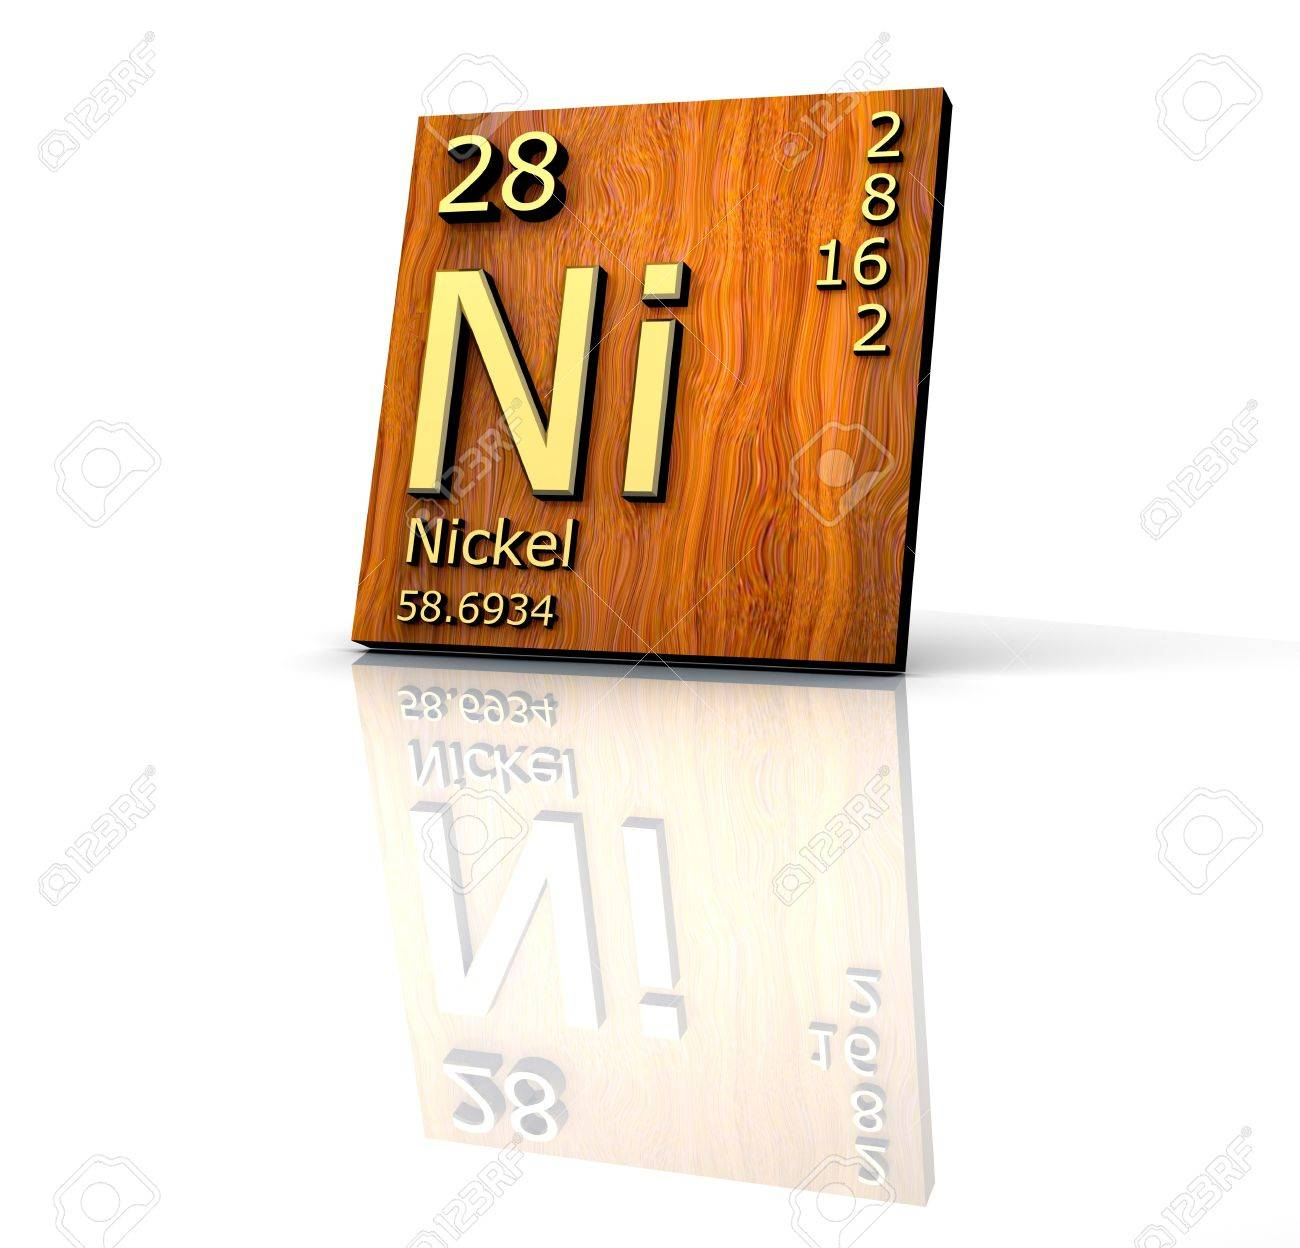 Periodic table symbol for nickel images periodic table images periodic table symbol for nickel choice image periodic table images periodic table symbol for nickel image gamestrikefo Gallery